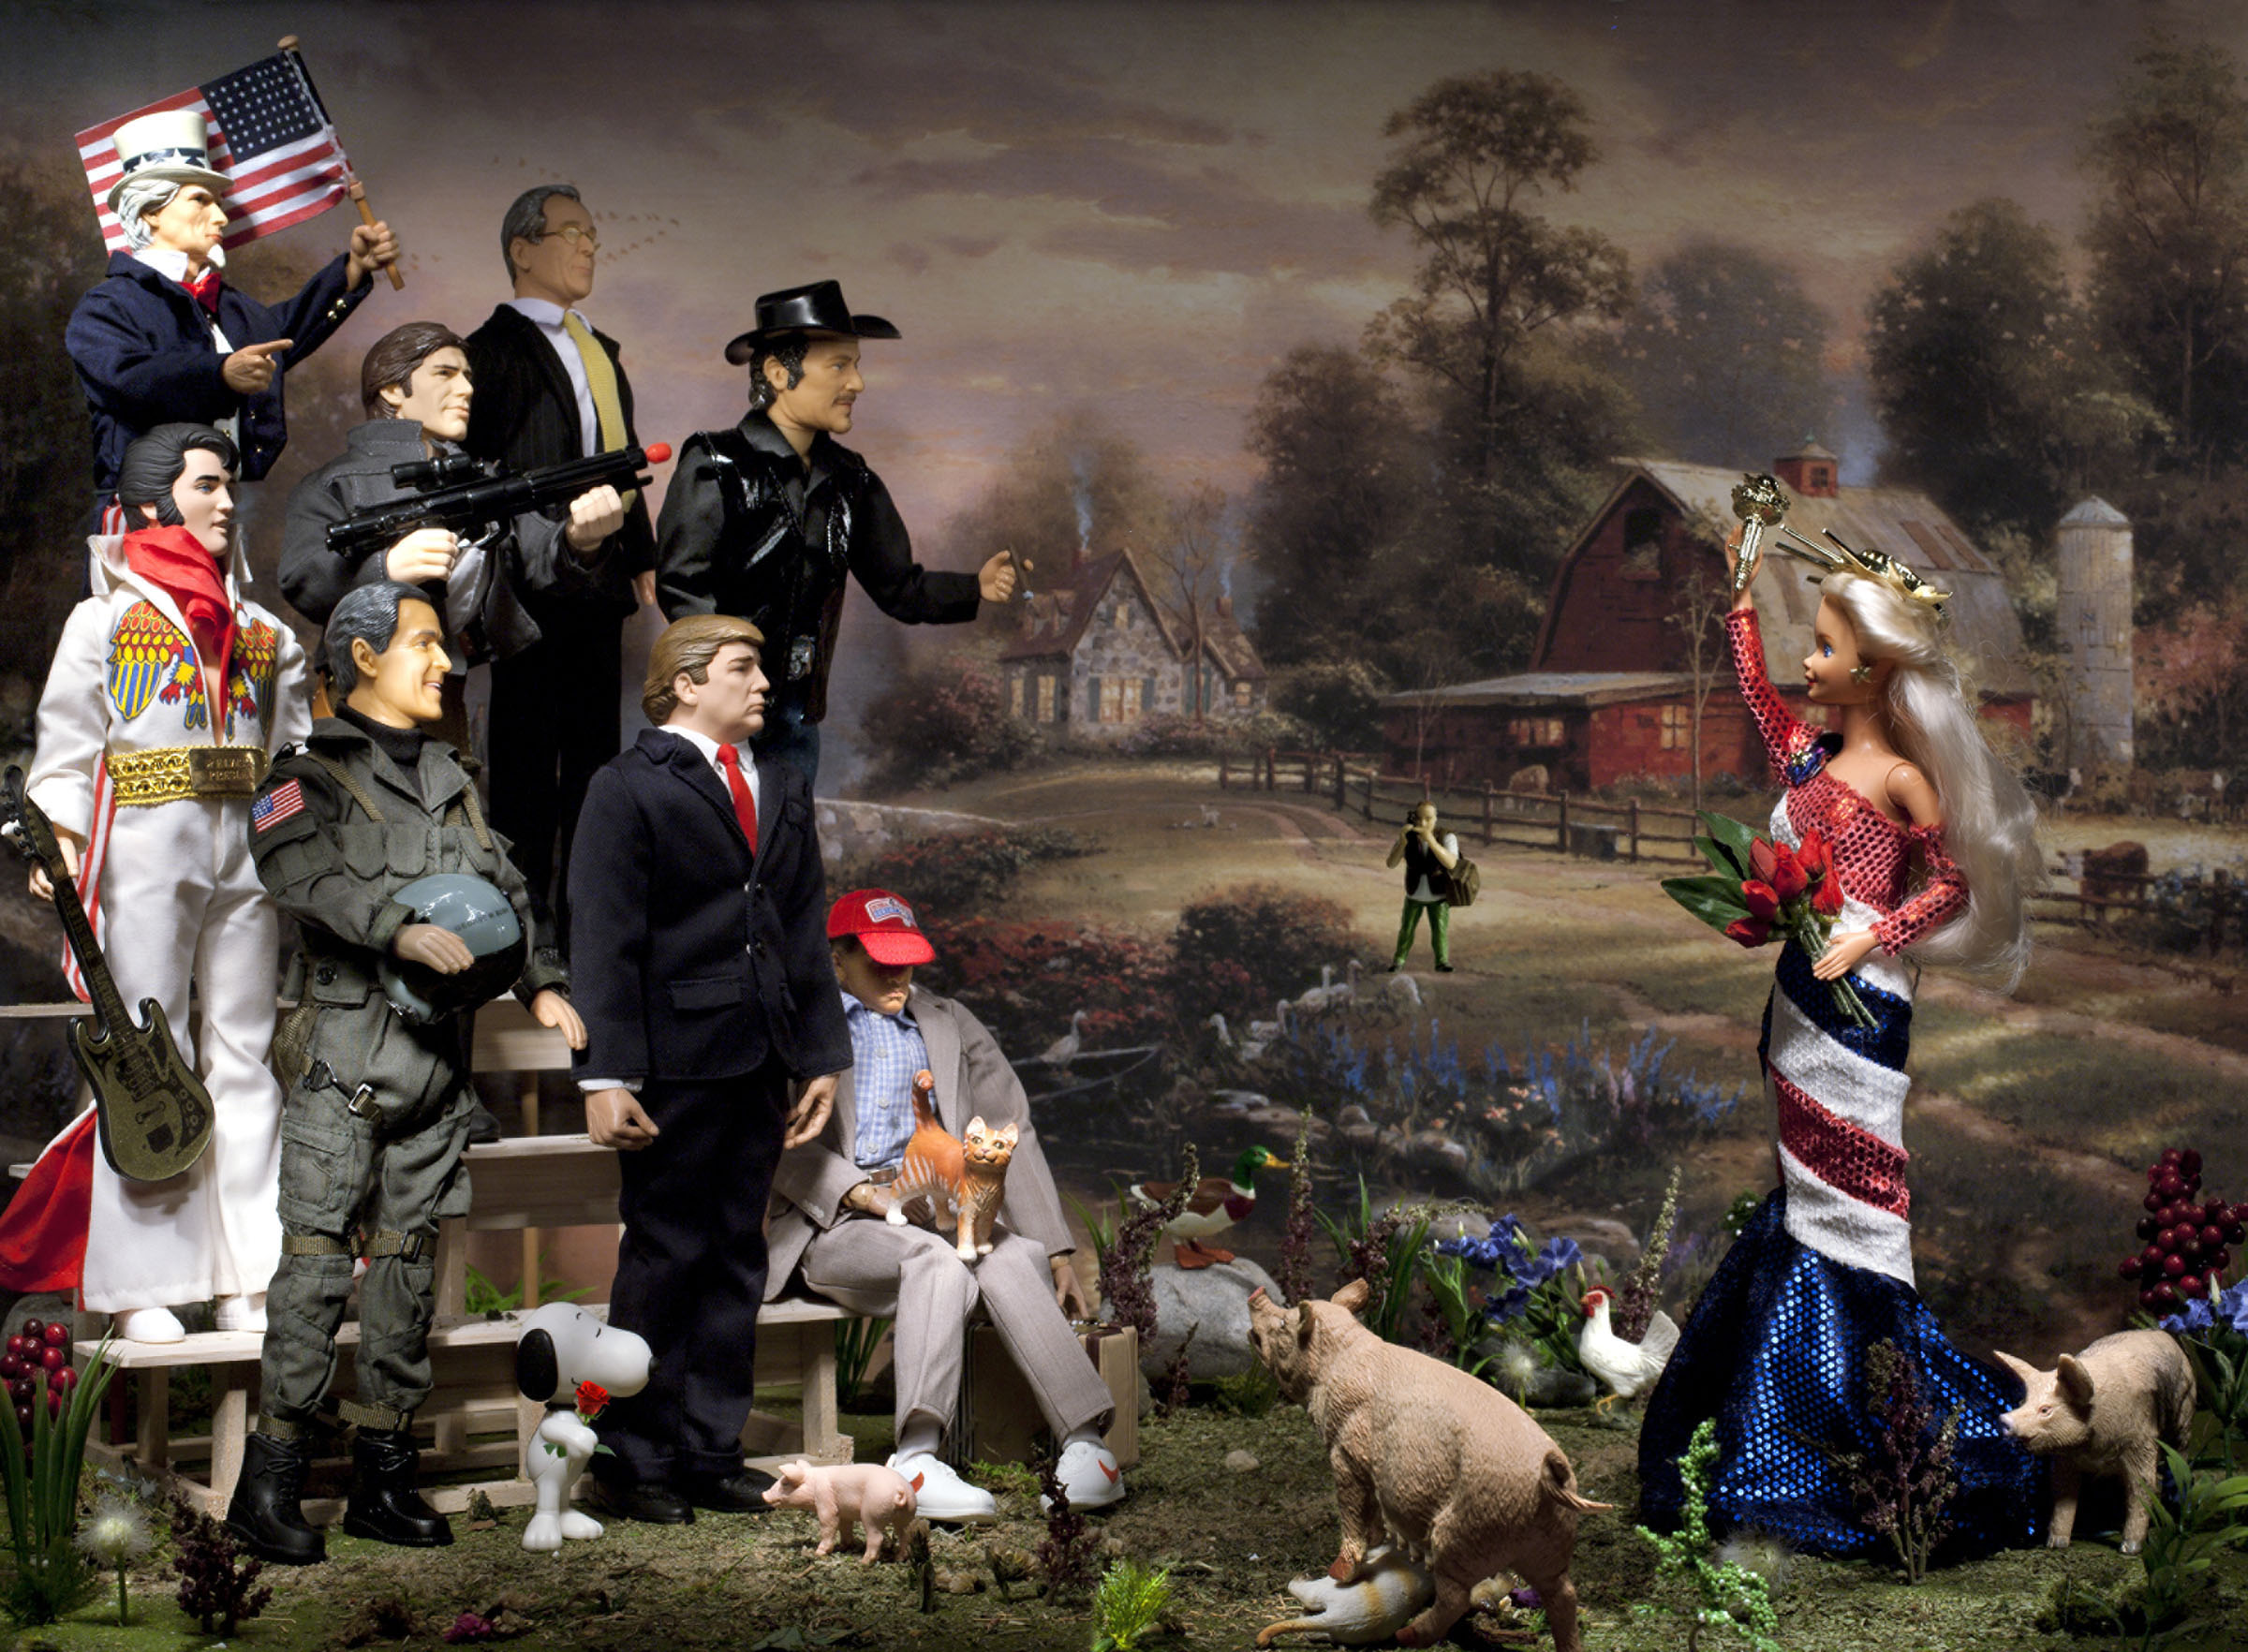 American Bachelorette (at Riverbend Farm), C print, 2013. Image Courtesy of Diana Thorneycroft.